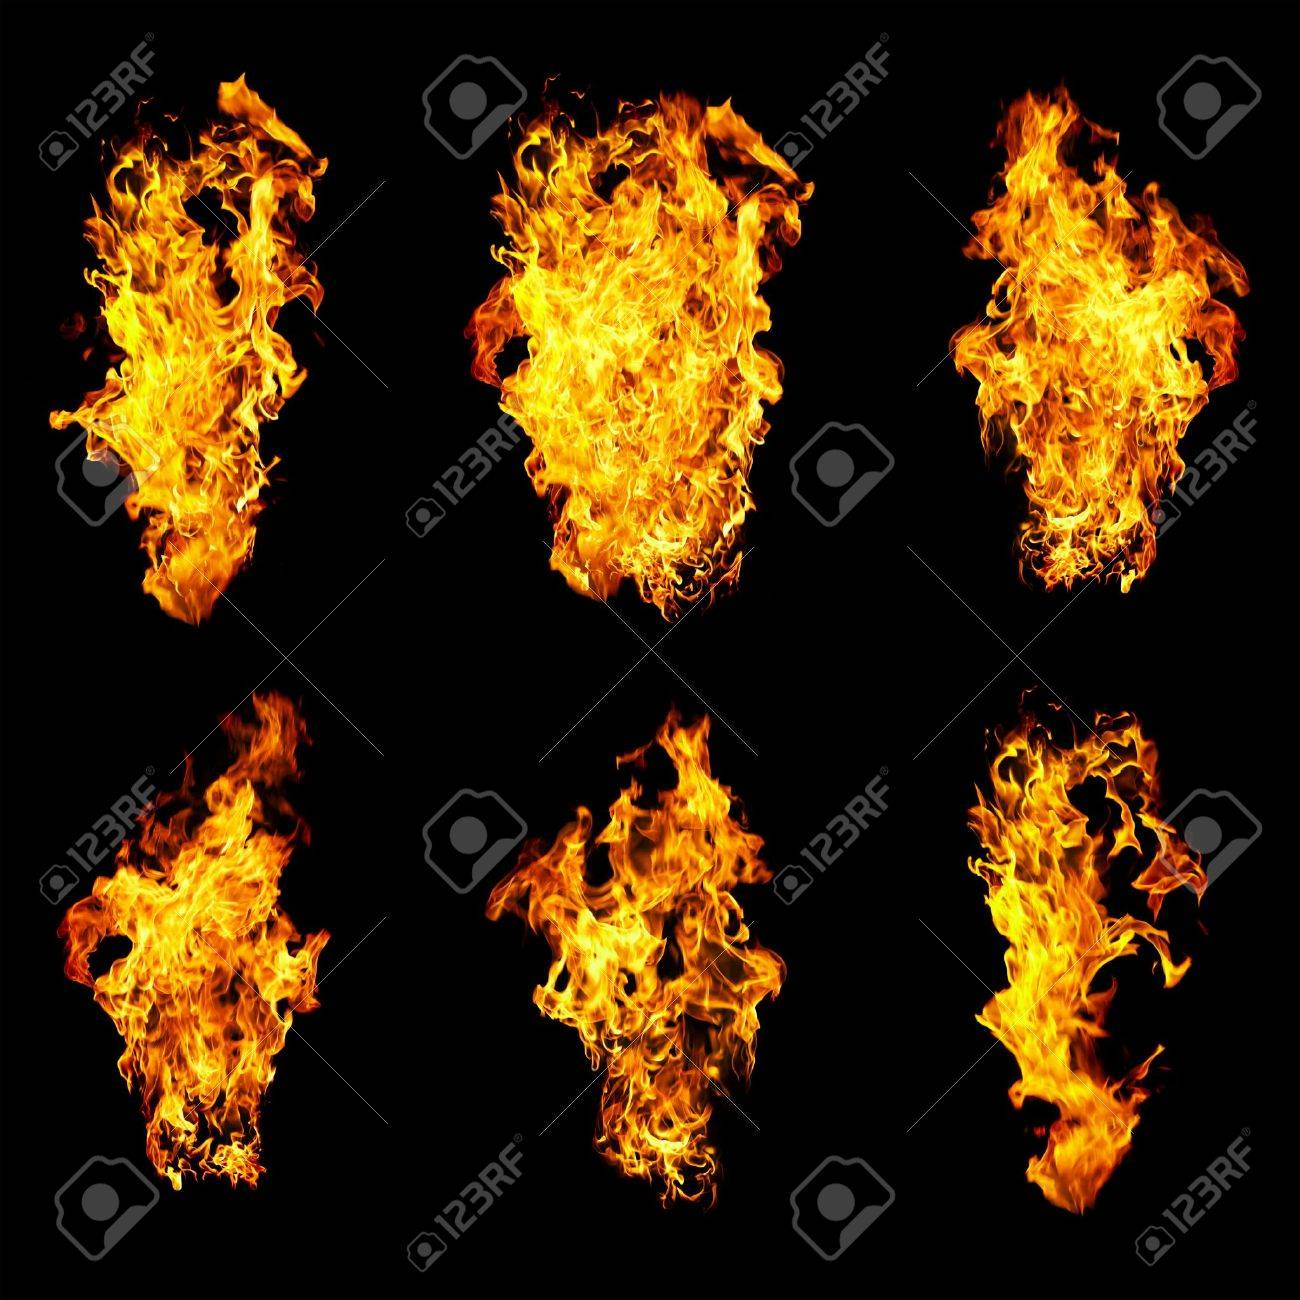 Fire photo on a black background ... Stock Photo - 3582485